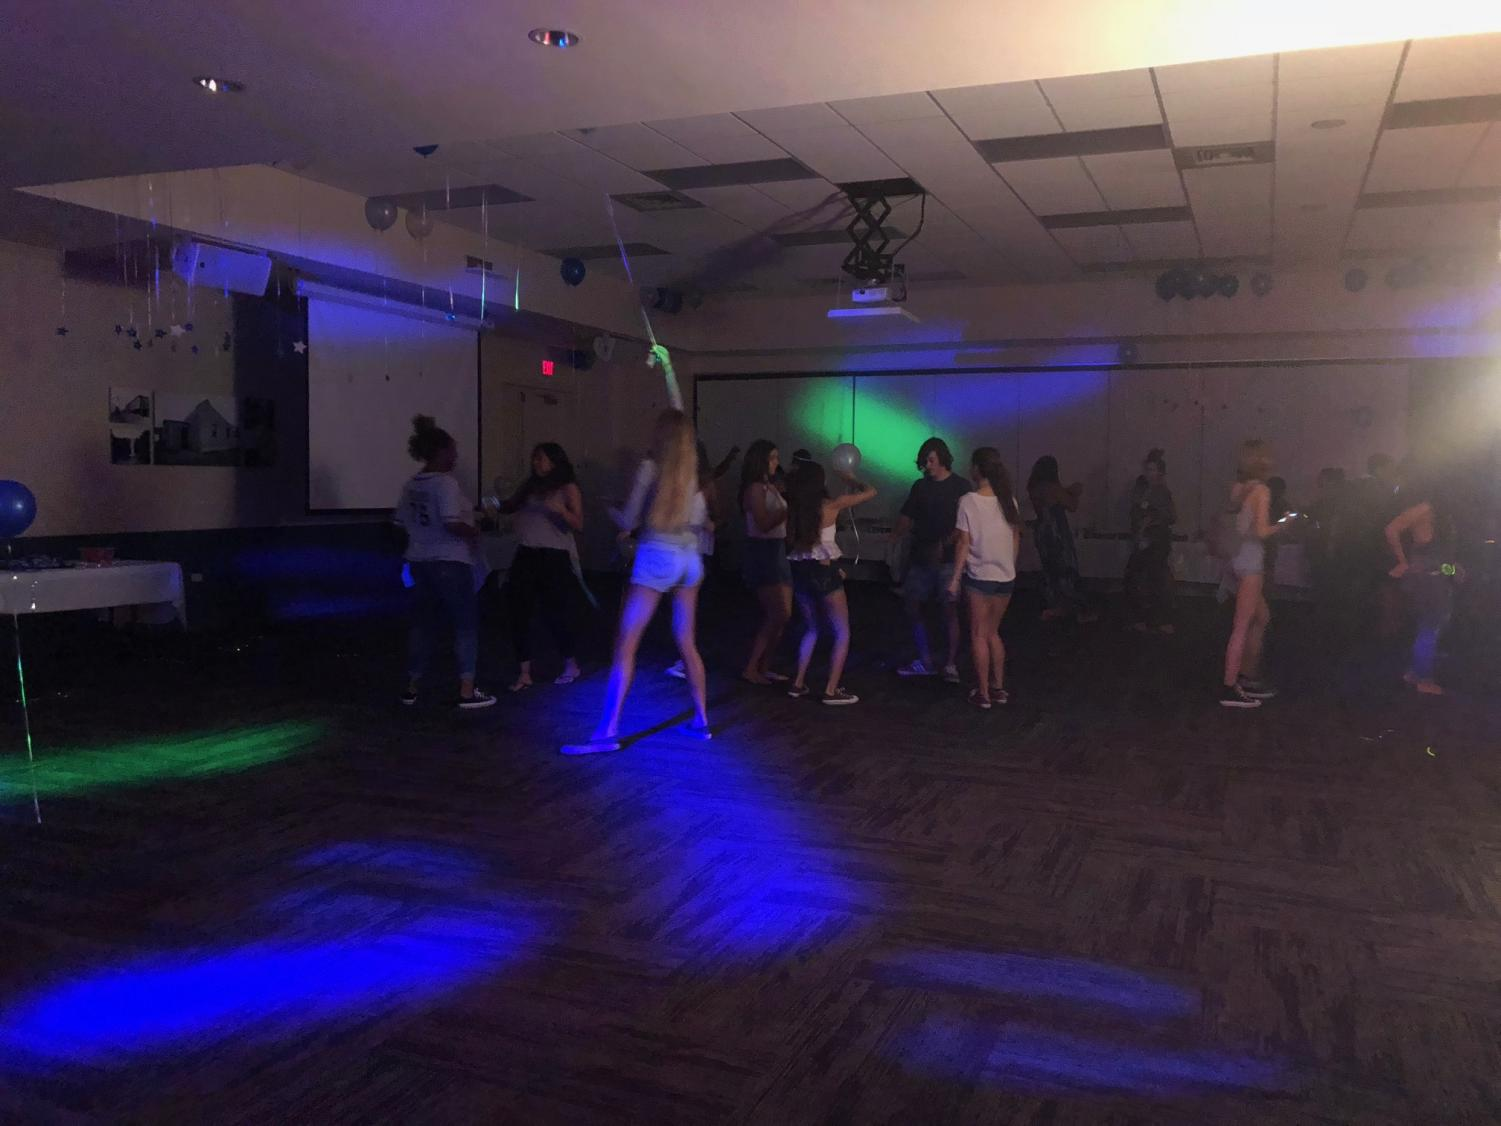 Students express their creative dance styles while neon lights flash across the room.